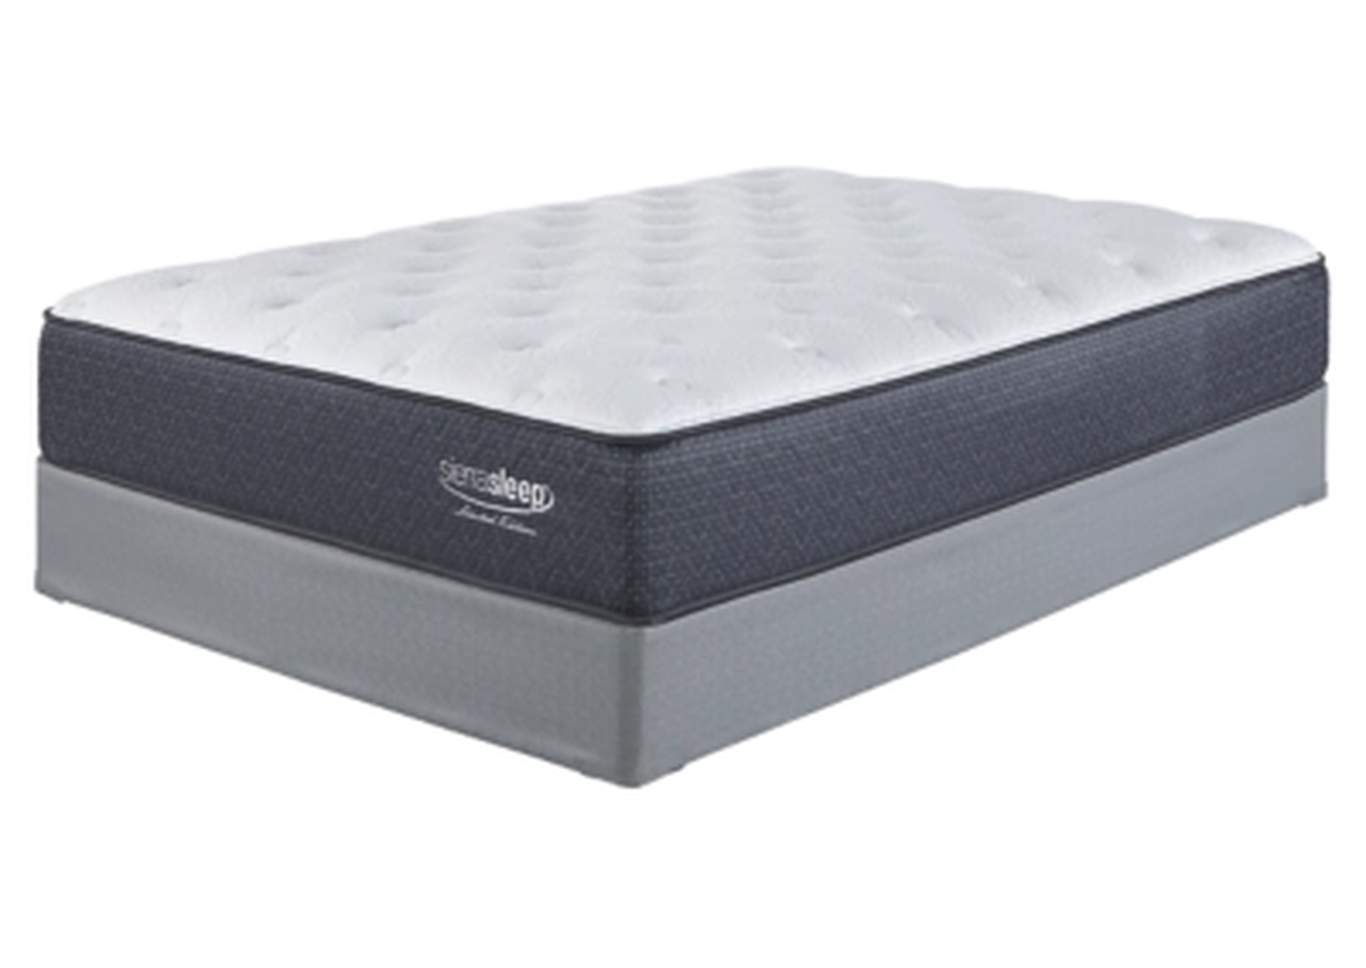 Limited Edition Plush White Queen Mattress,Sierra Sleep